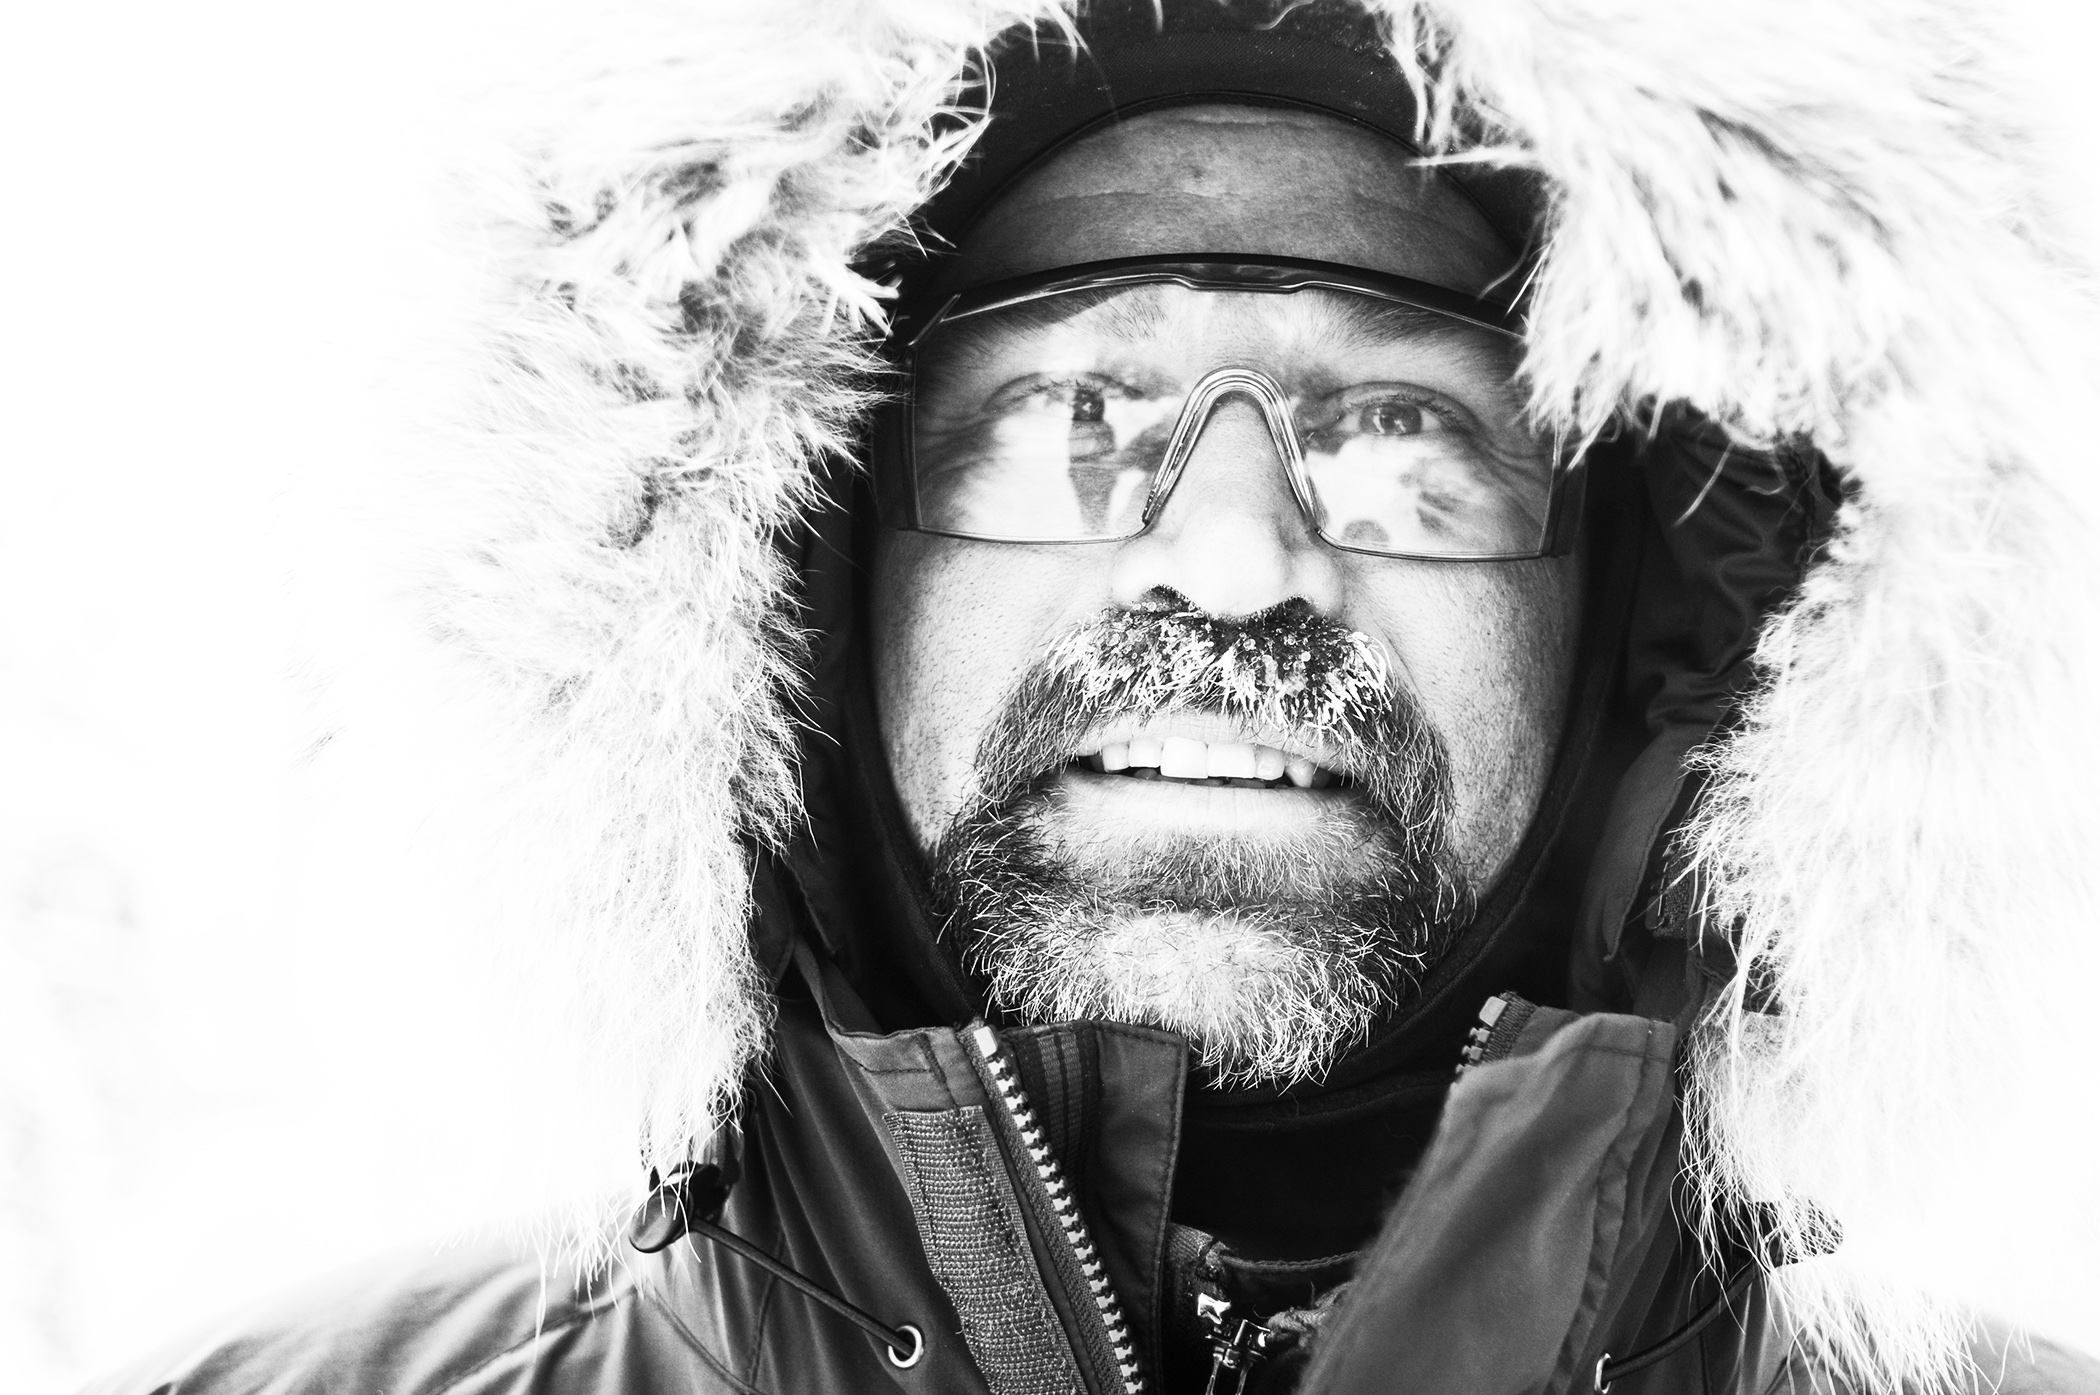 Musher Mark Black poses for a portrait January 27, 2010 near Duluth, Minnesota. Black, who was born and raised in Duluth, has raced the Beargrease dogsled race 15 times -- more than any other musher in Beargrease history.